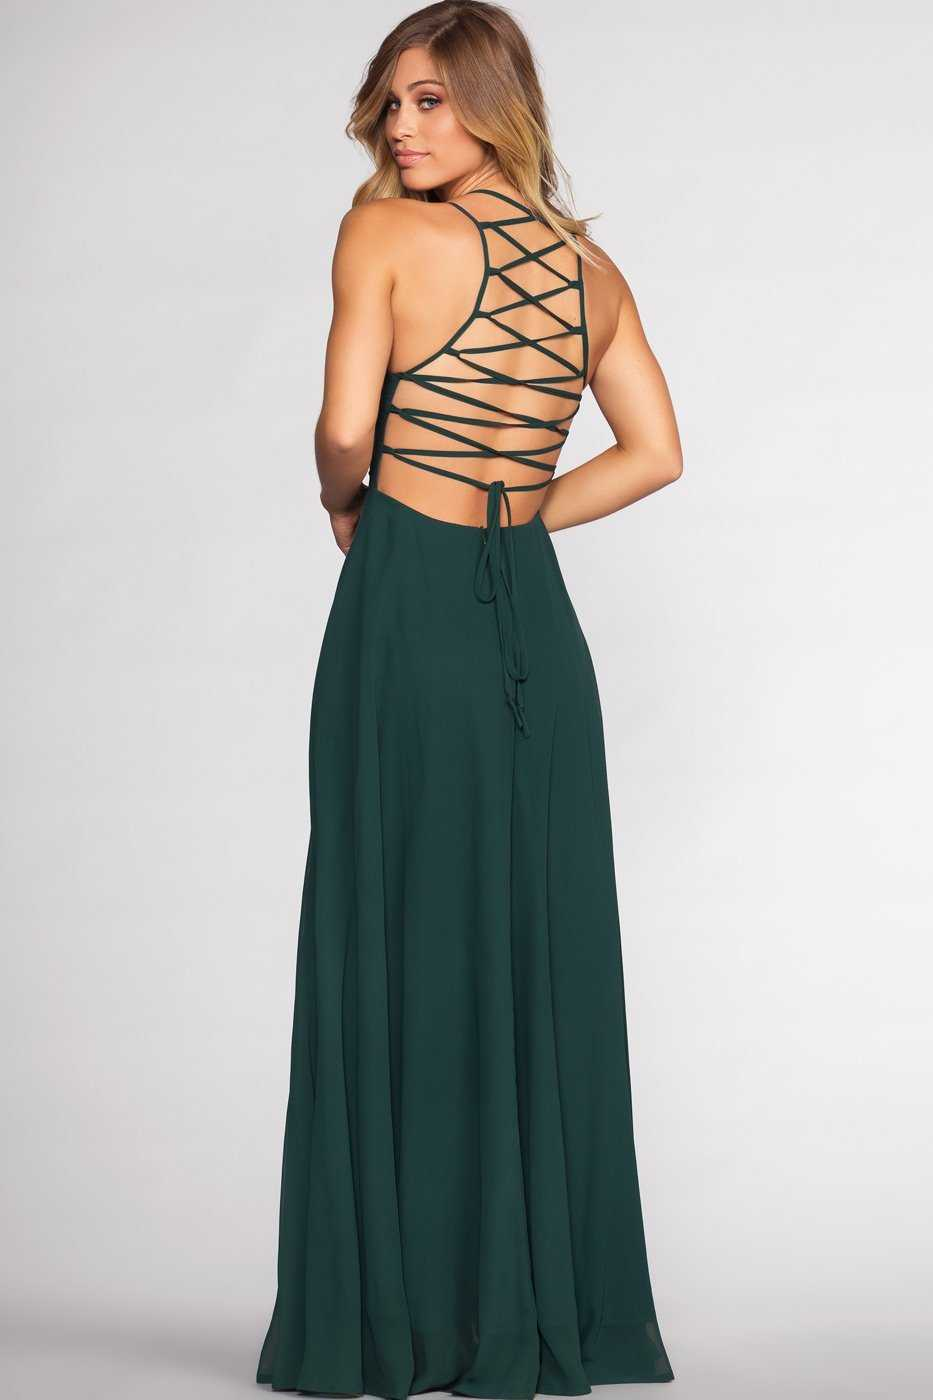 Turquoise Long Dresses Casual